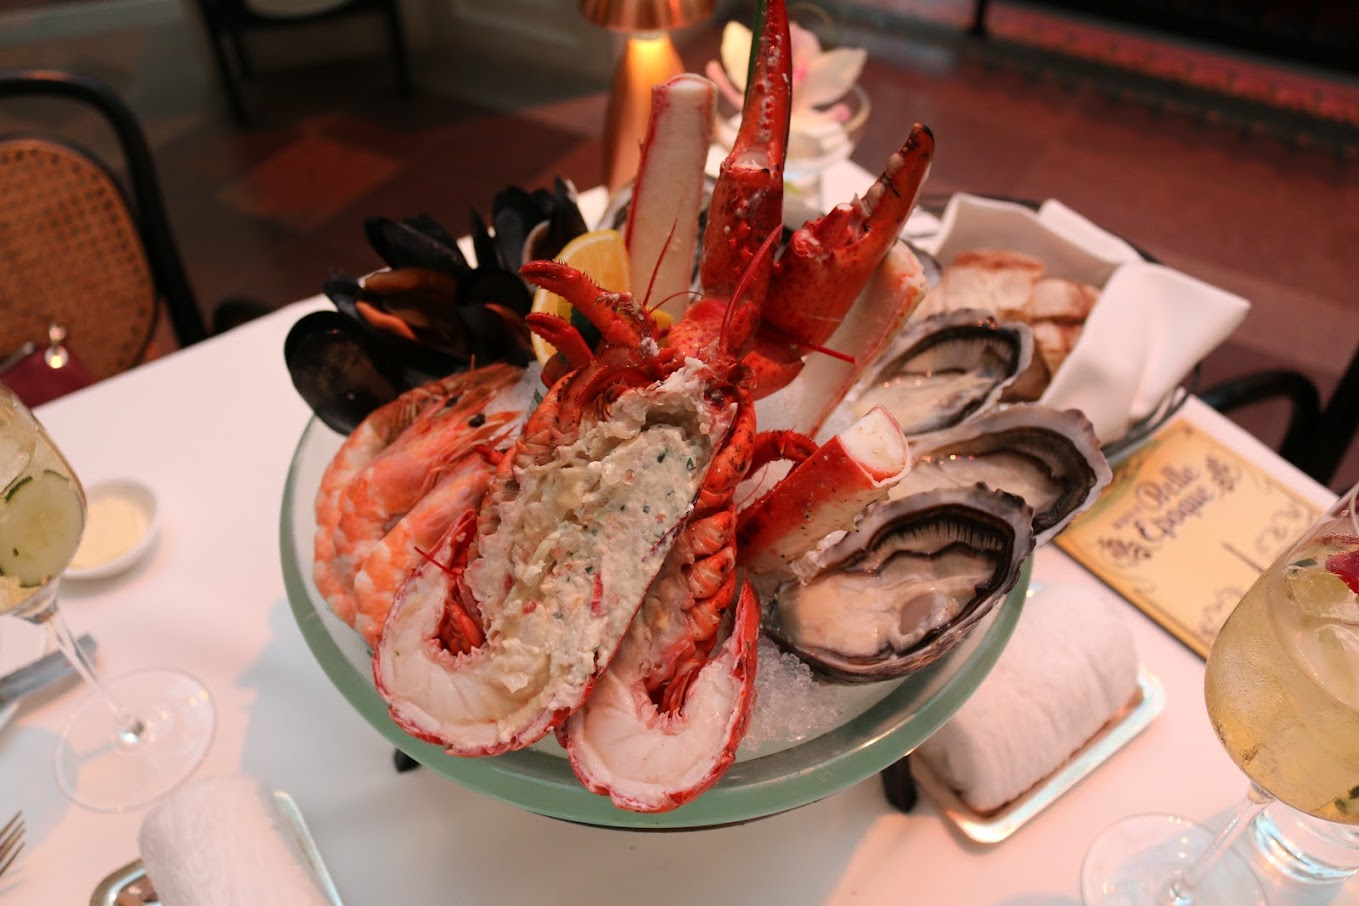 Seafood platter from Aux Beaux Arts in the MGM Macau